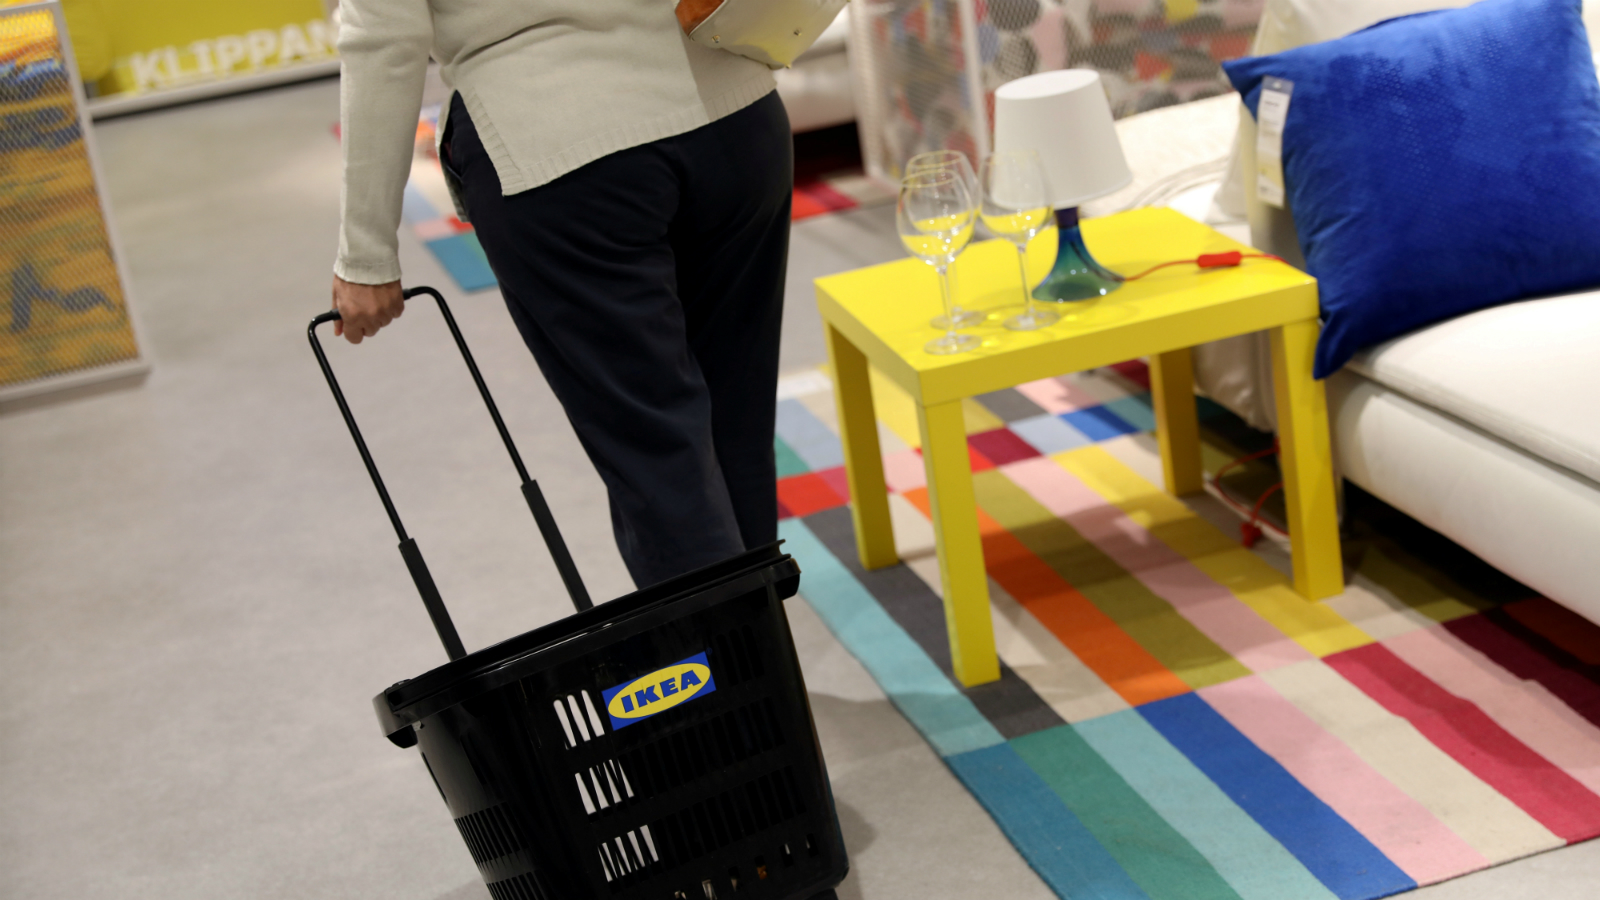 IKEA's India plans include tie-ups with real estate